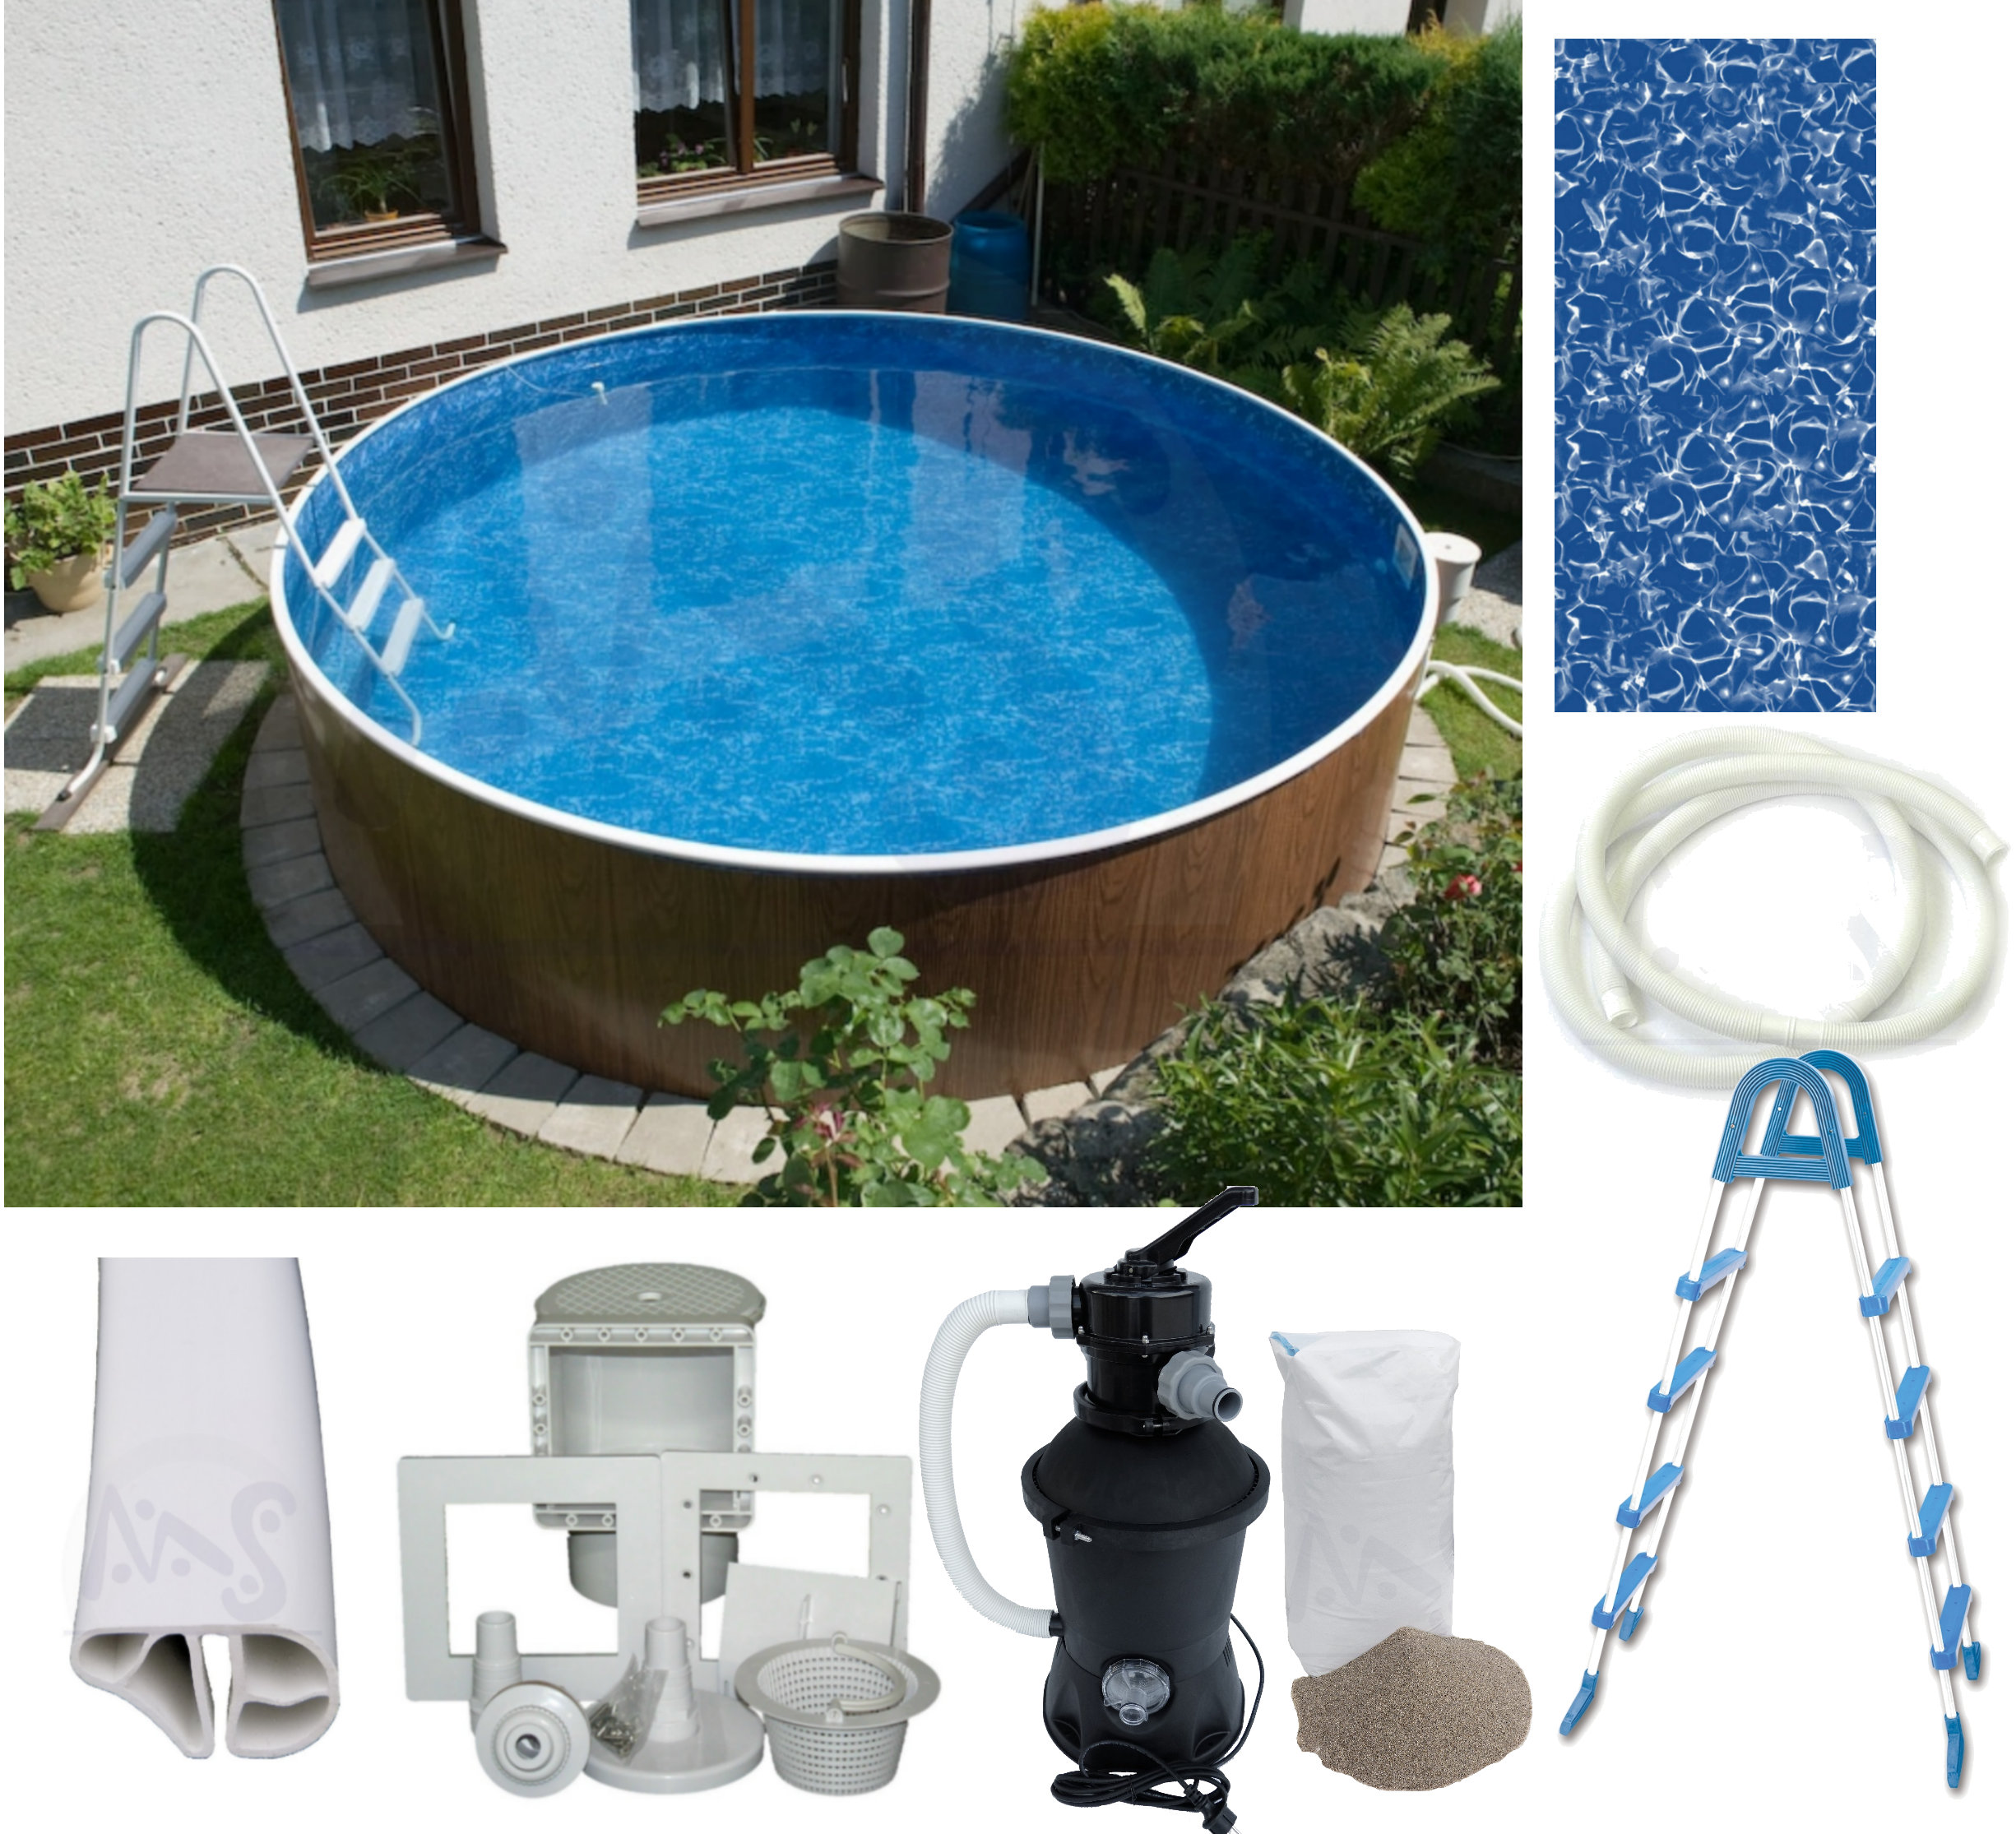 Pool Filteranlage Ohne Sand Swimmingpool Swimmingpools Pool Pools Rundbecken Ovalbecken